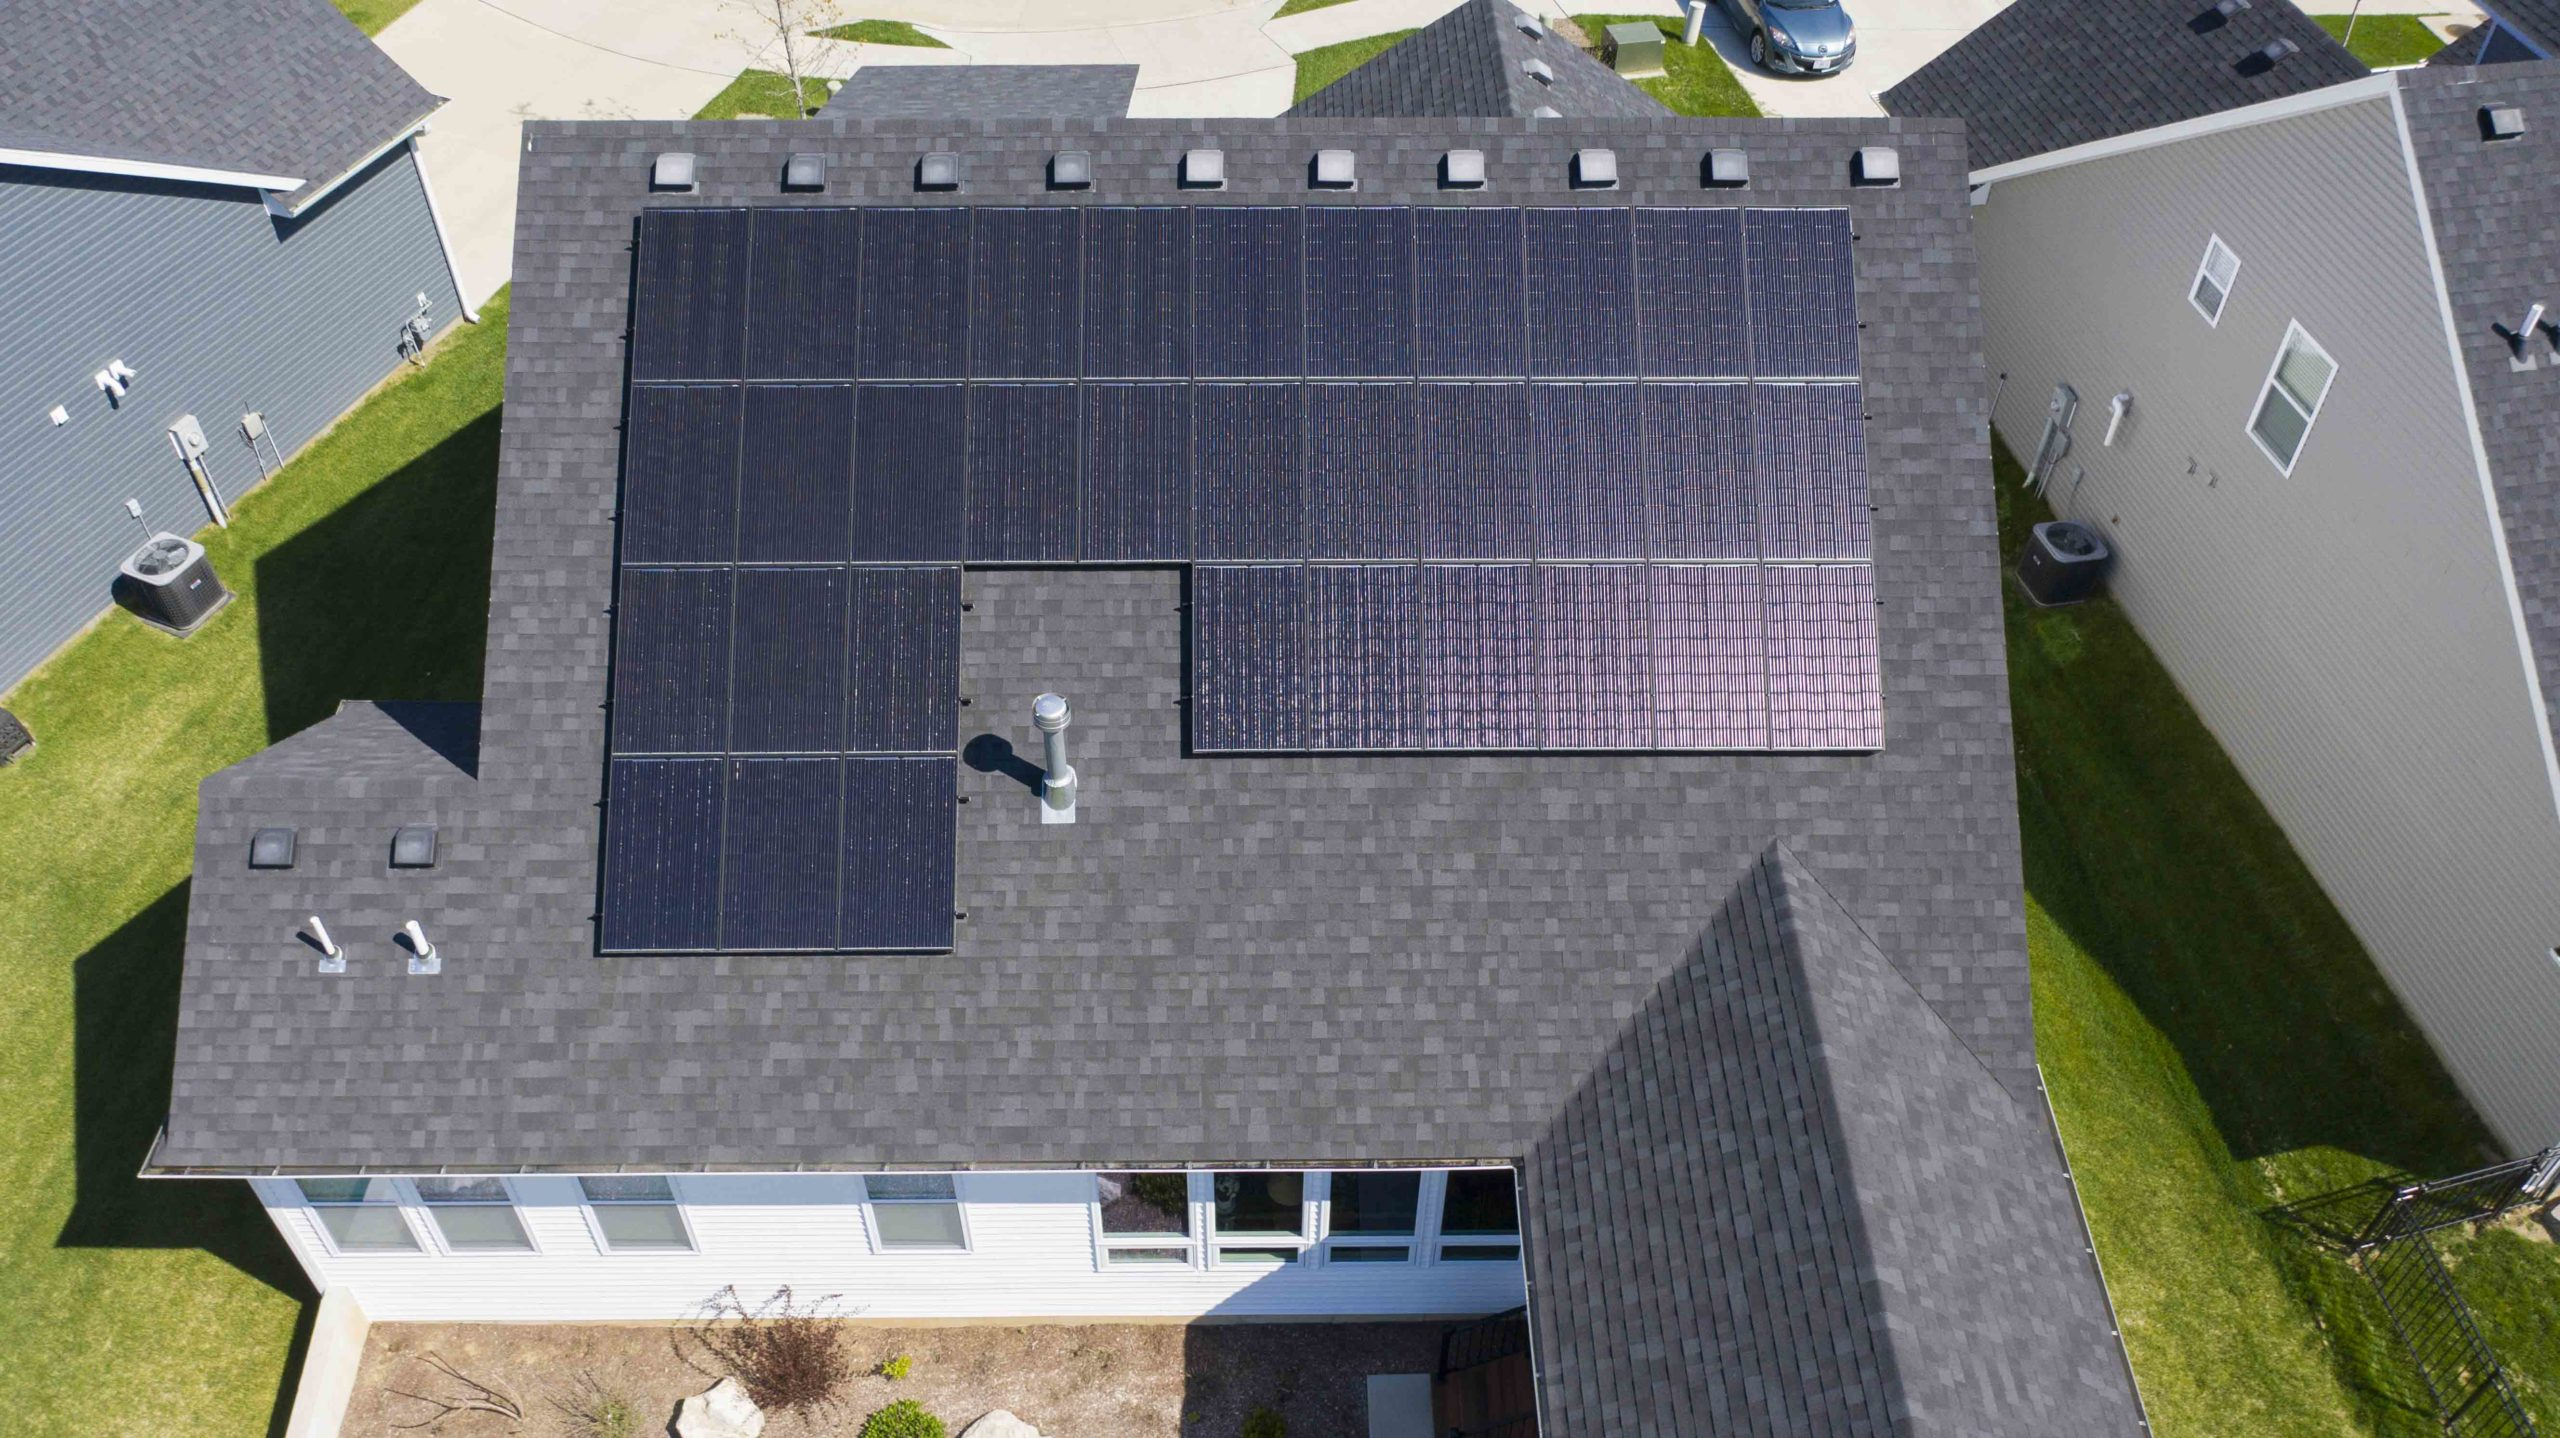 A simple roof line and clear, even plane gave Dogwood Solar a wonderful space to install solar panels on this household.